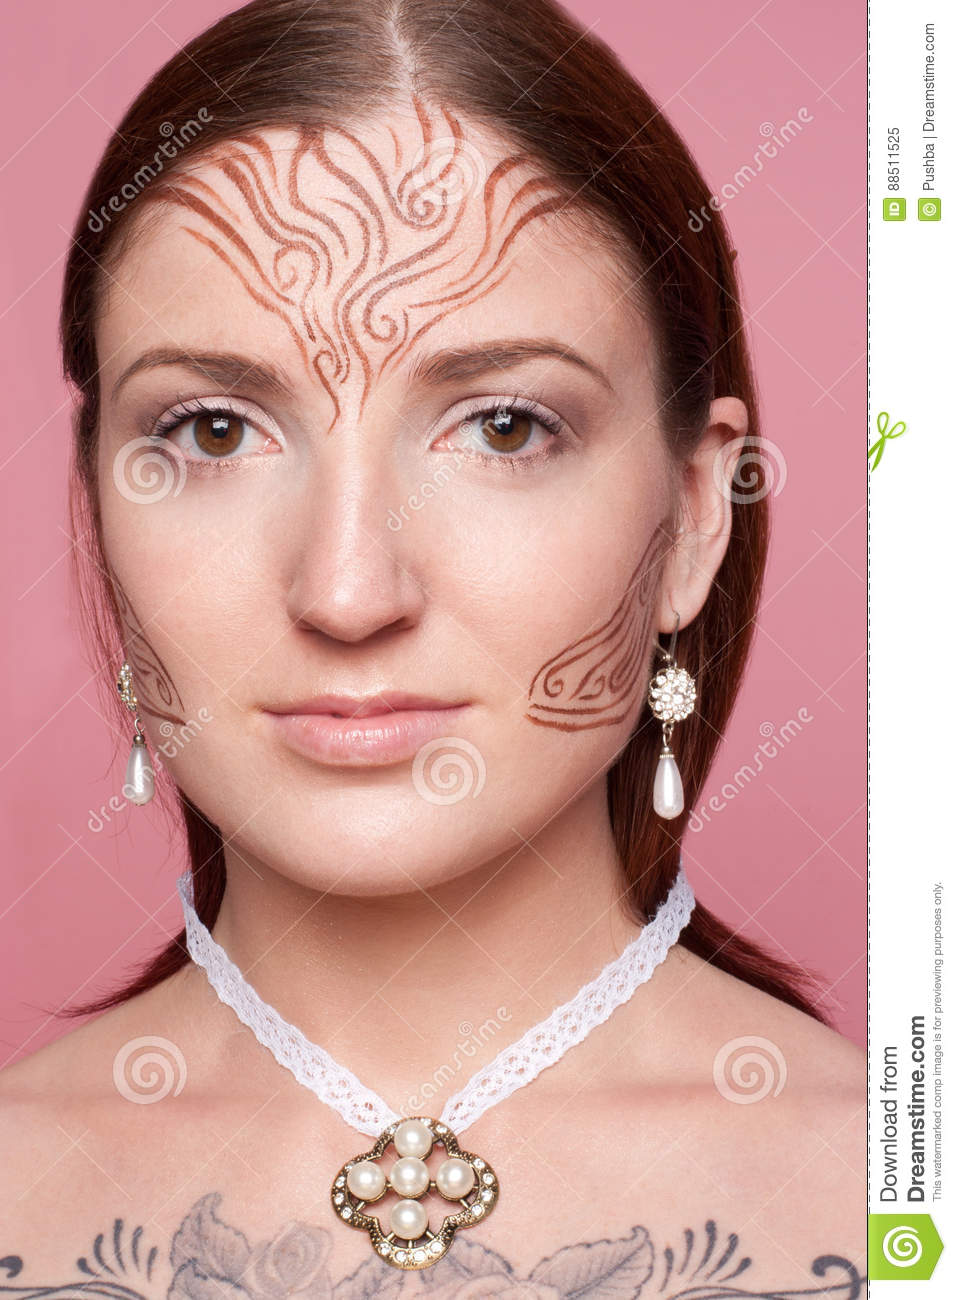 Elven girl with drawings on her face